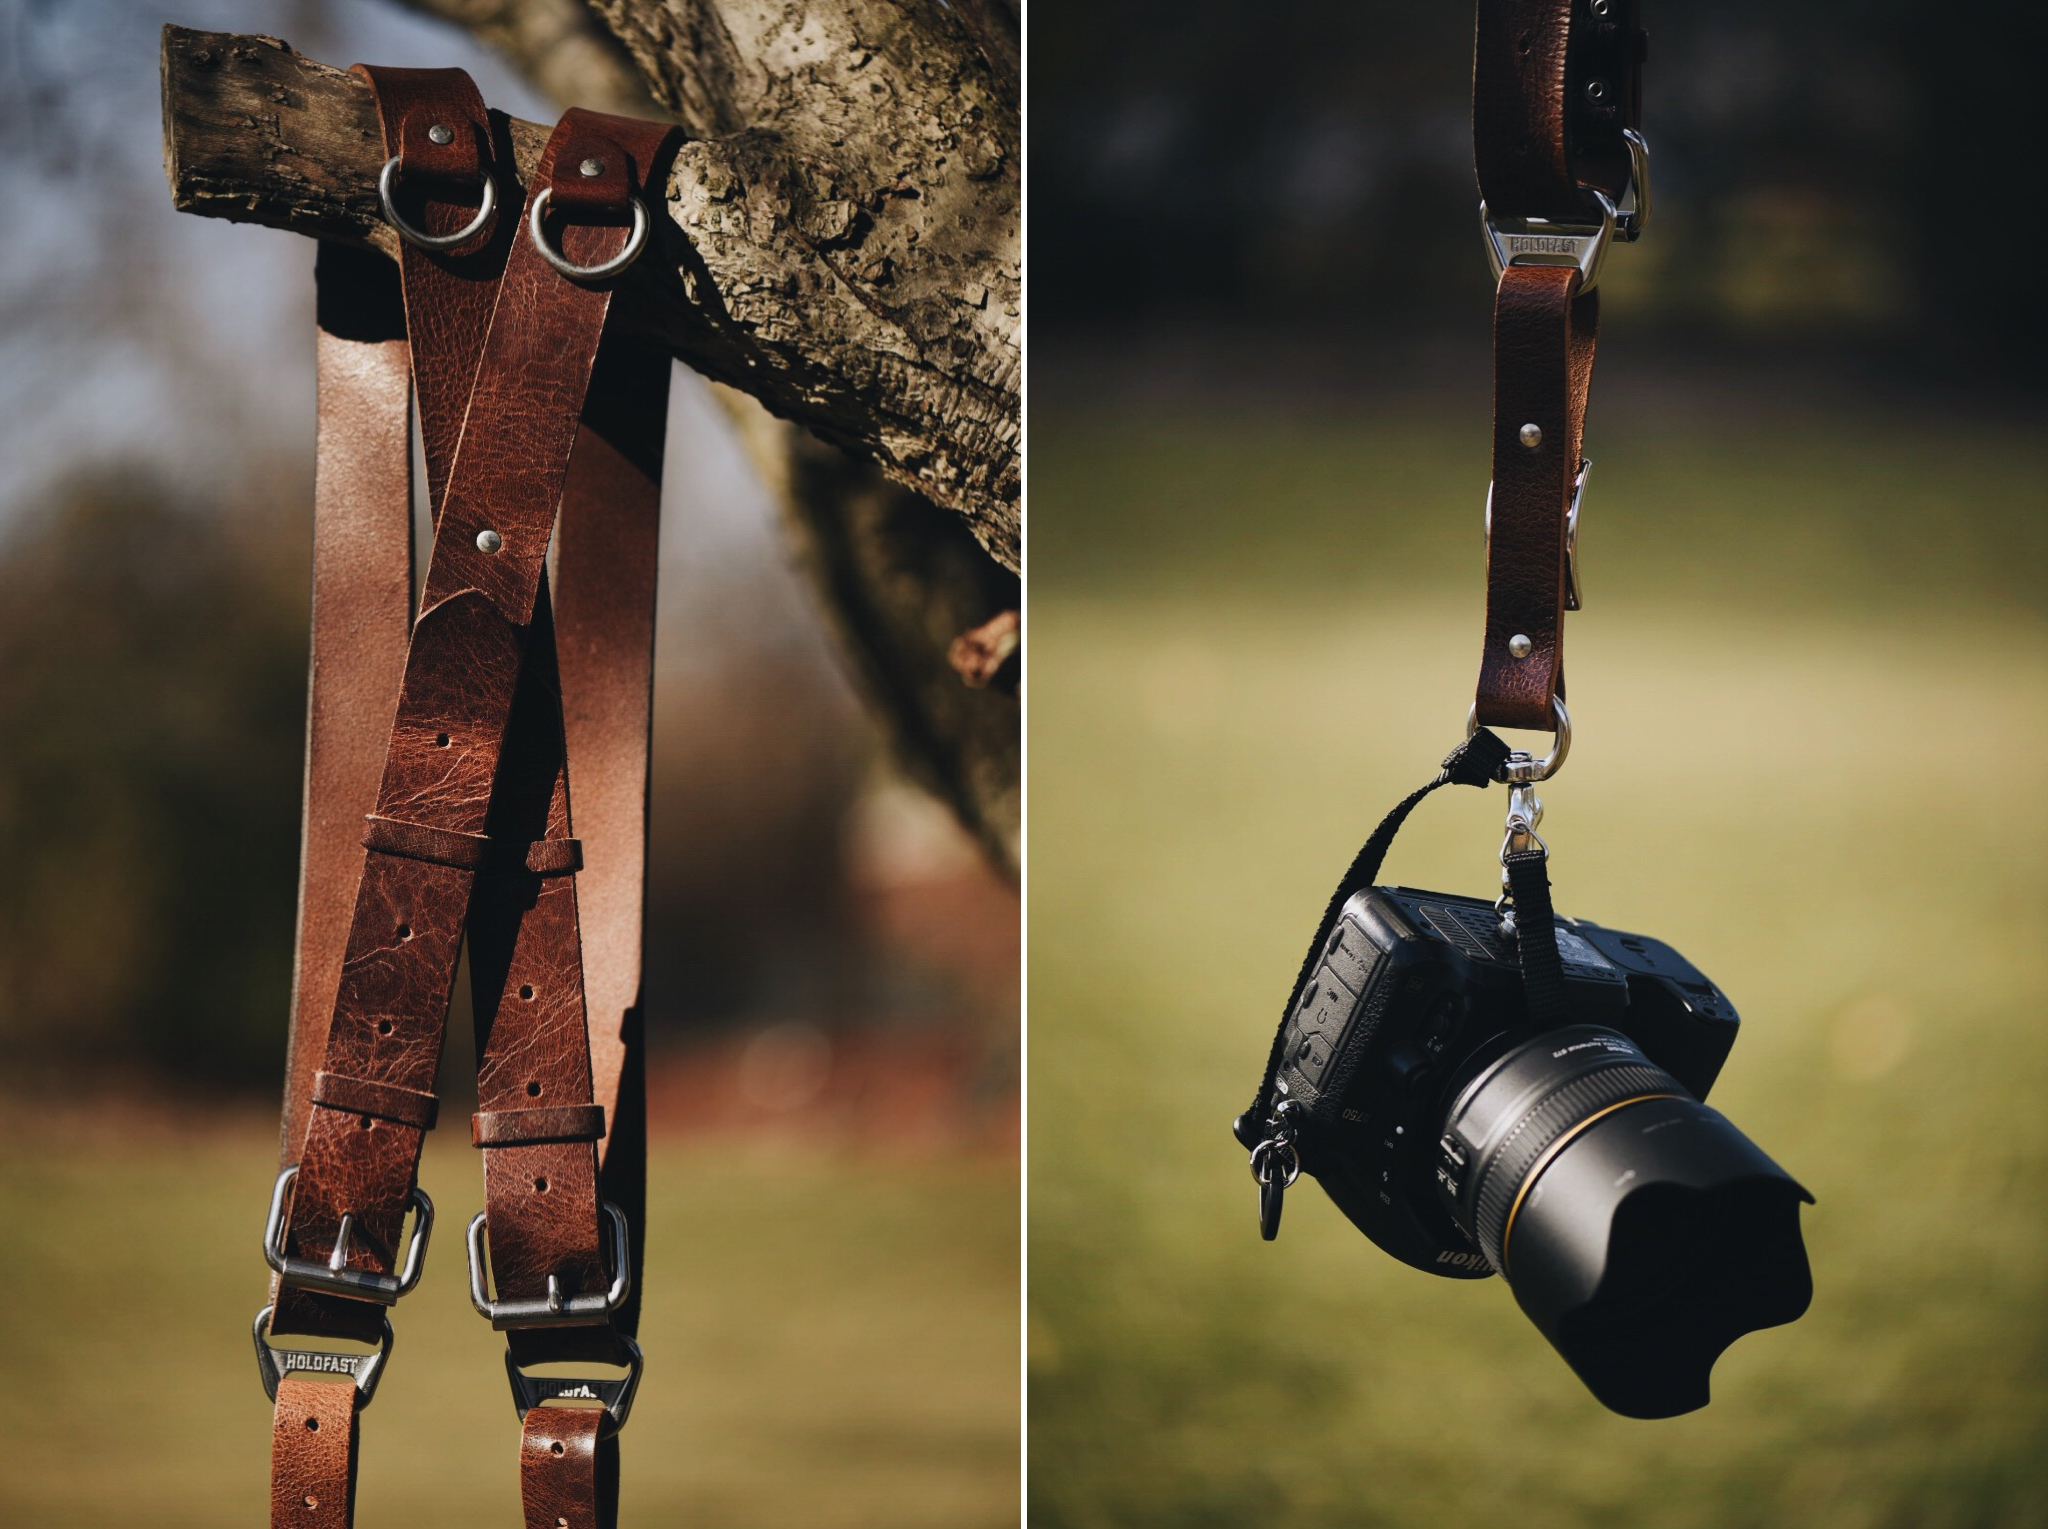 As a destination wedding photographer, I carry two cameras with me throughout a wedding day. A dual camera strap system is crucial for me, so I can remain hands-free while I assist my bride and set up shots. Unlike many other straps on the market, the Holdfast MoneyMaker gives me the assurance that as I move and work throughout a wedding, my straps won